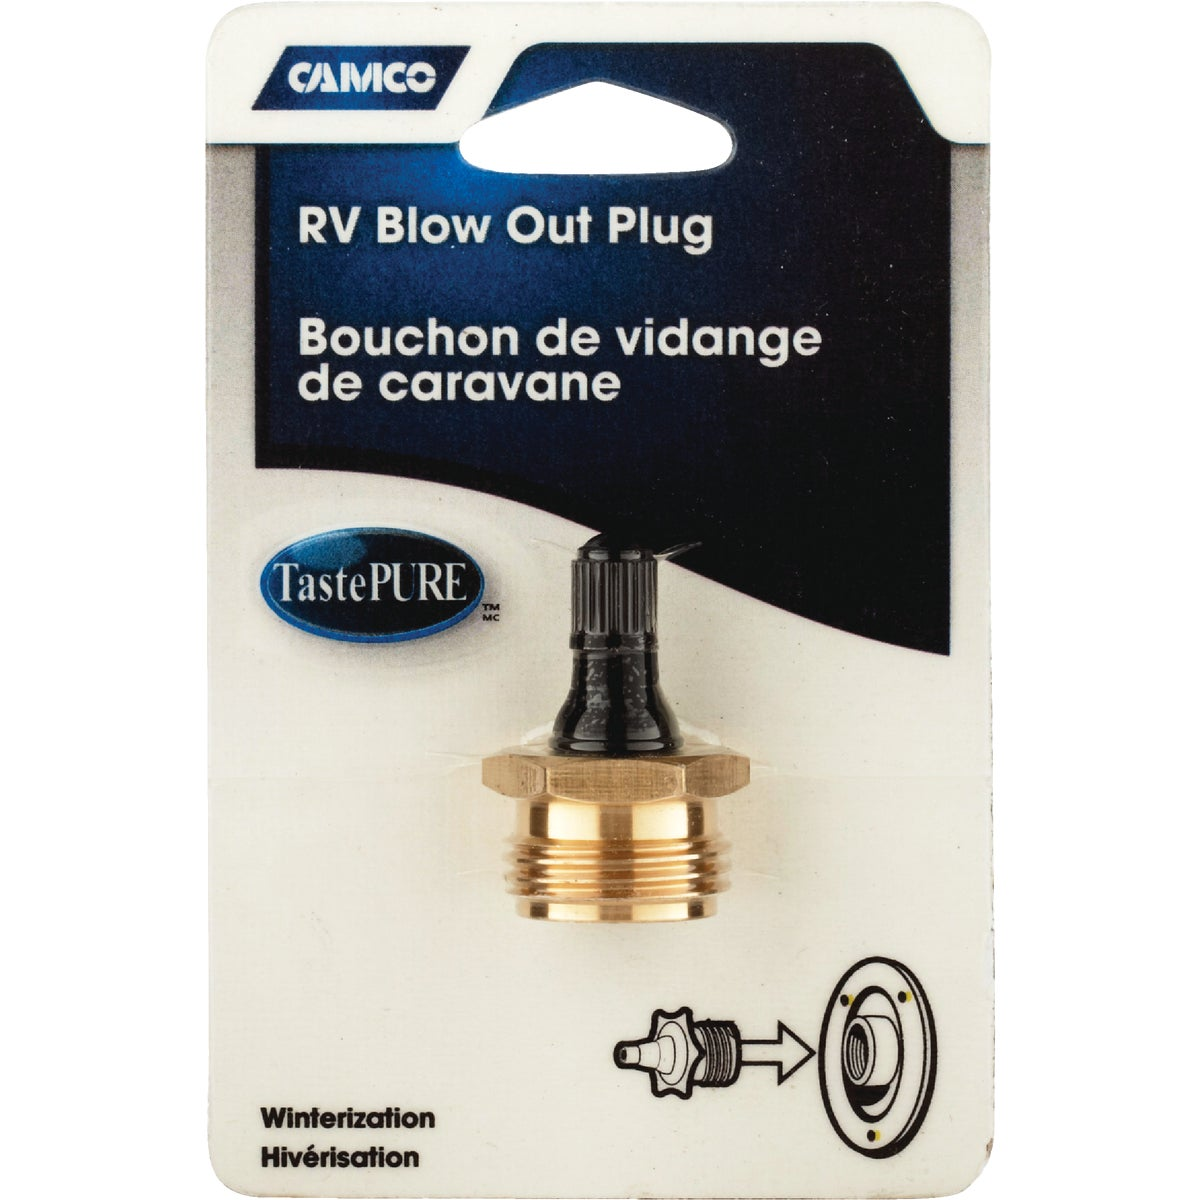 RV ALUM BLOW OUT KIT - 36153 by Camco Mfg.